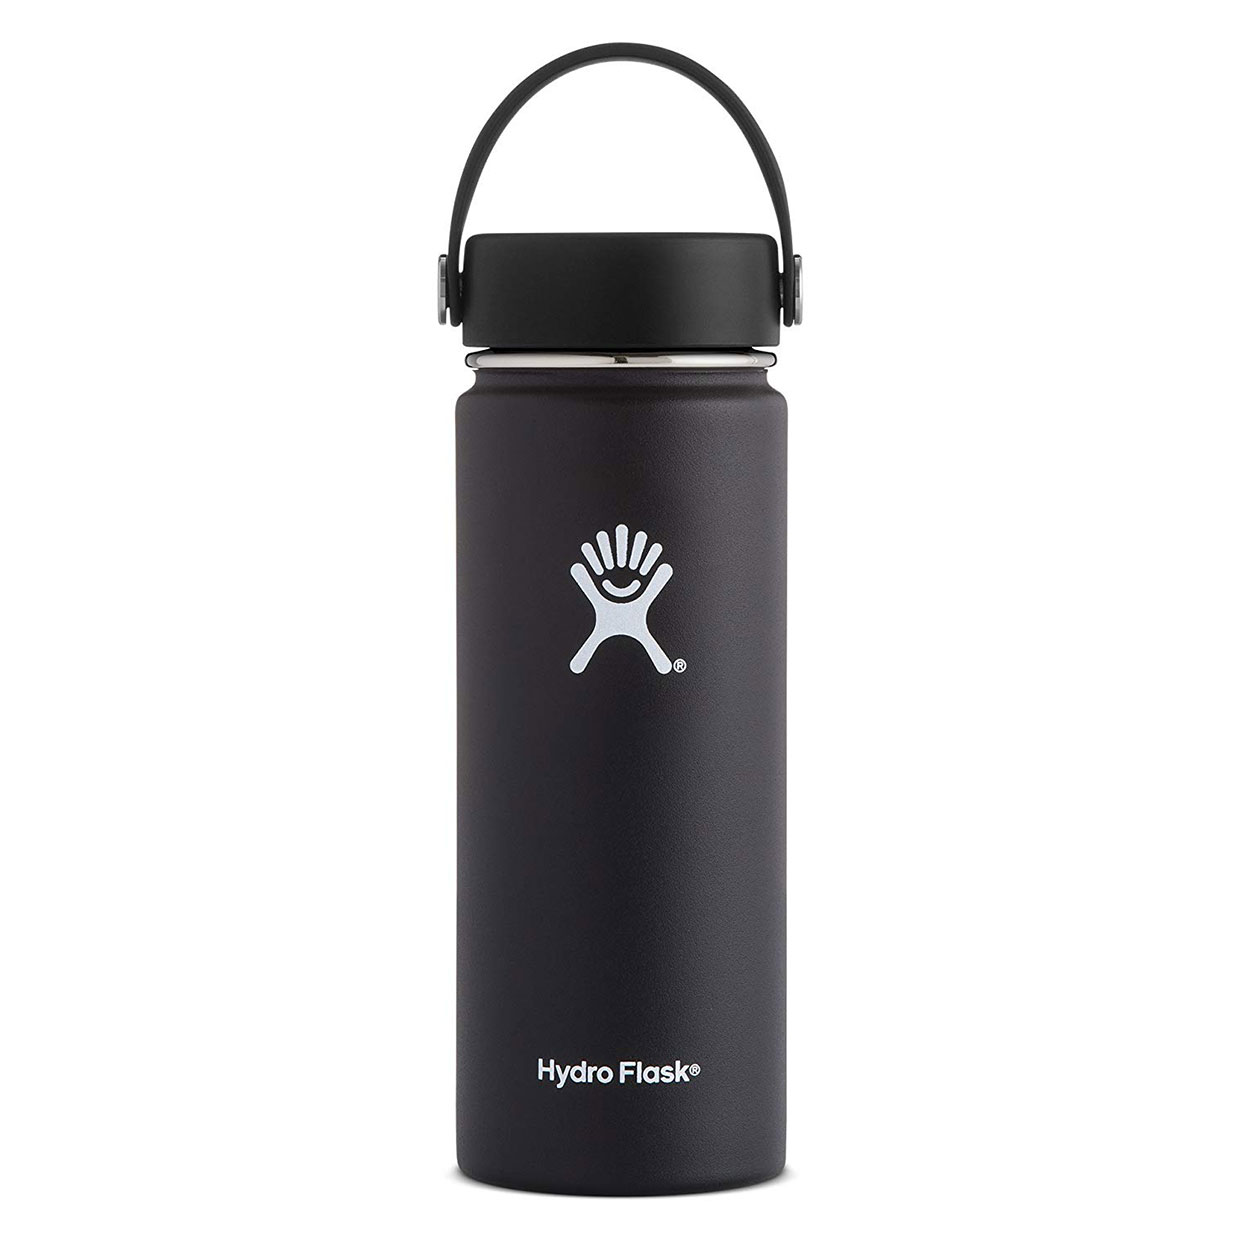 Hydro Flask Double Wall Vacuum Insulated Bottle